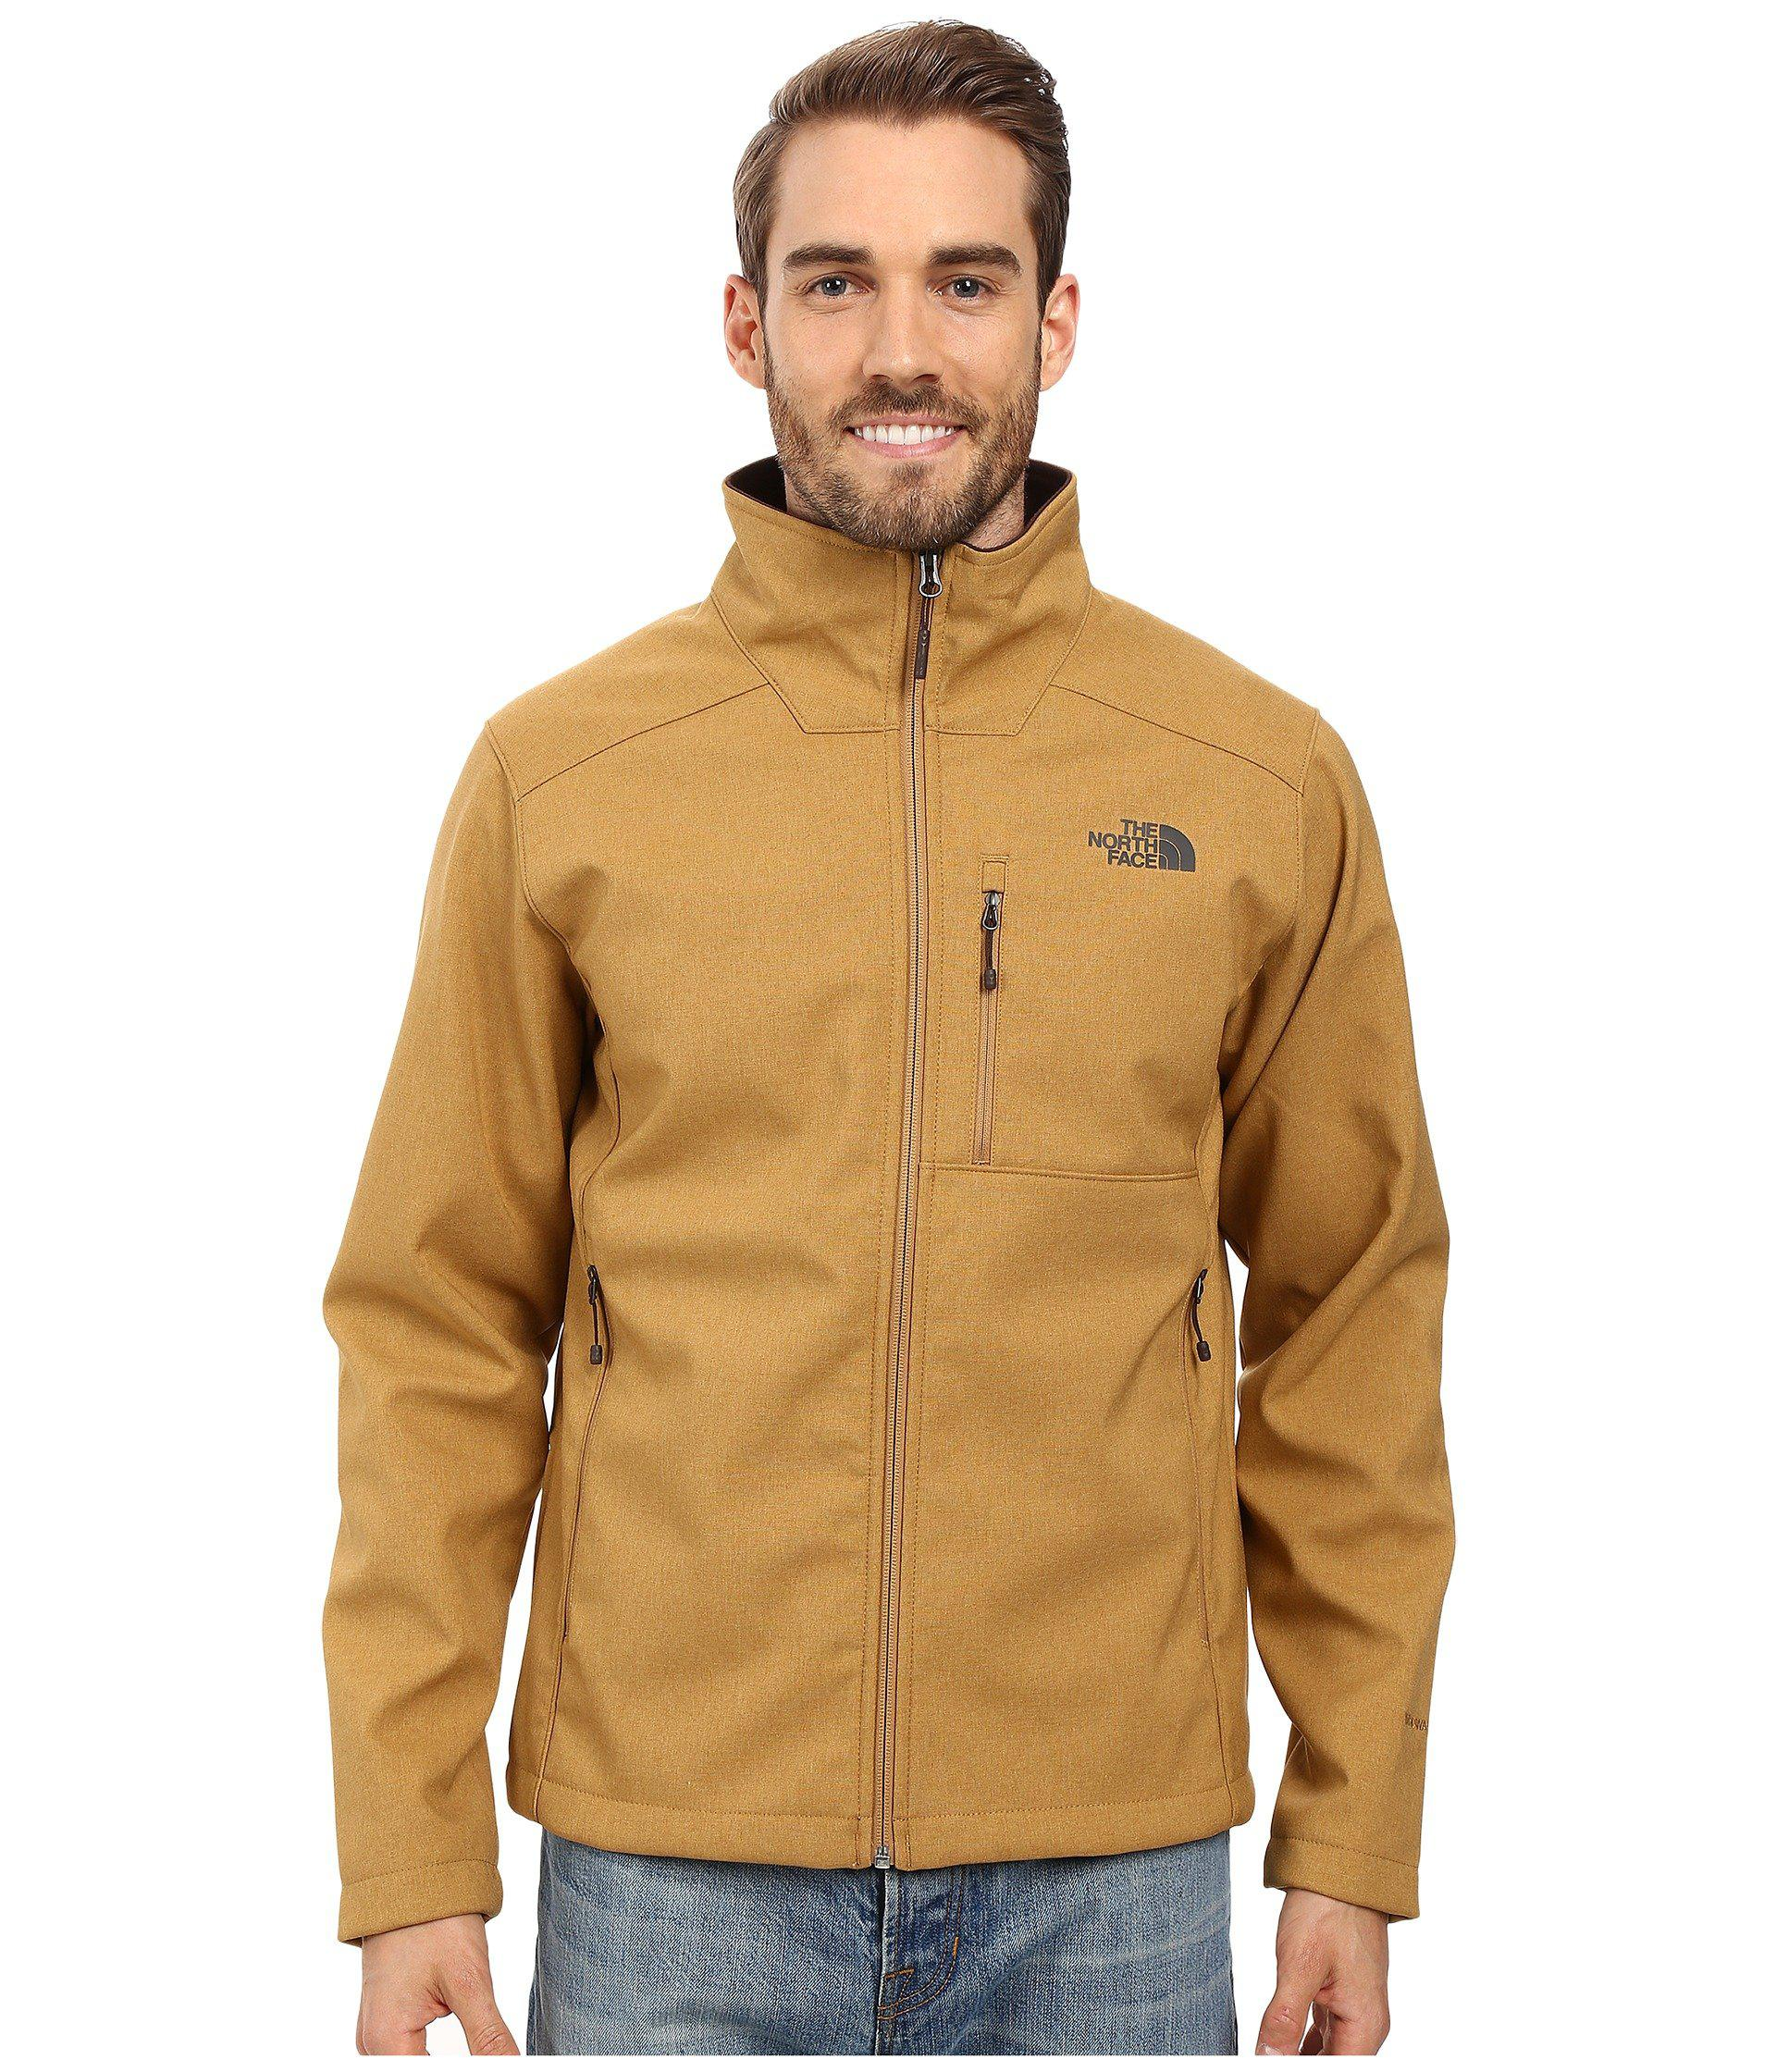 dcd6f433a release date the north face mens apex bionic jacket heather grey ...